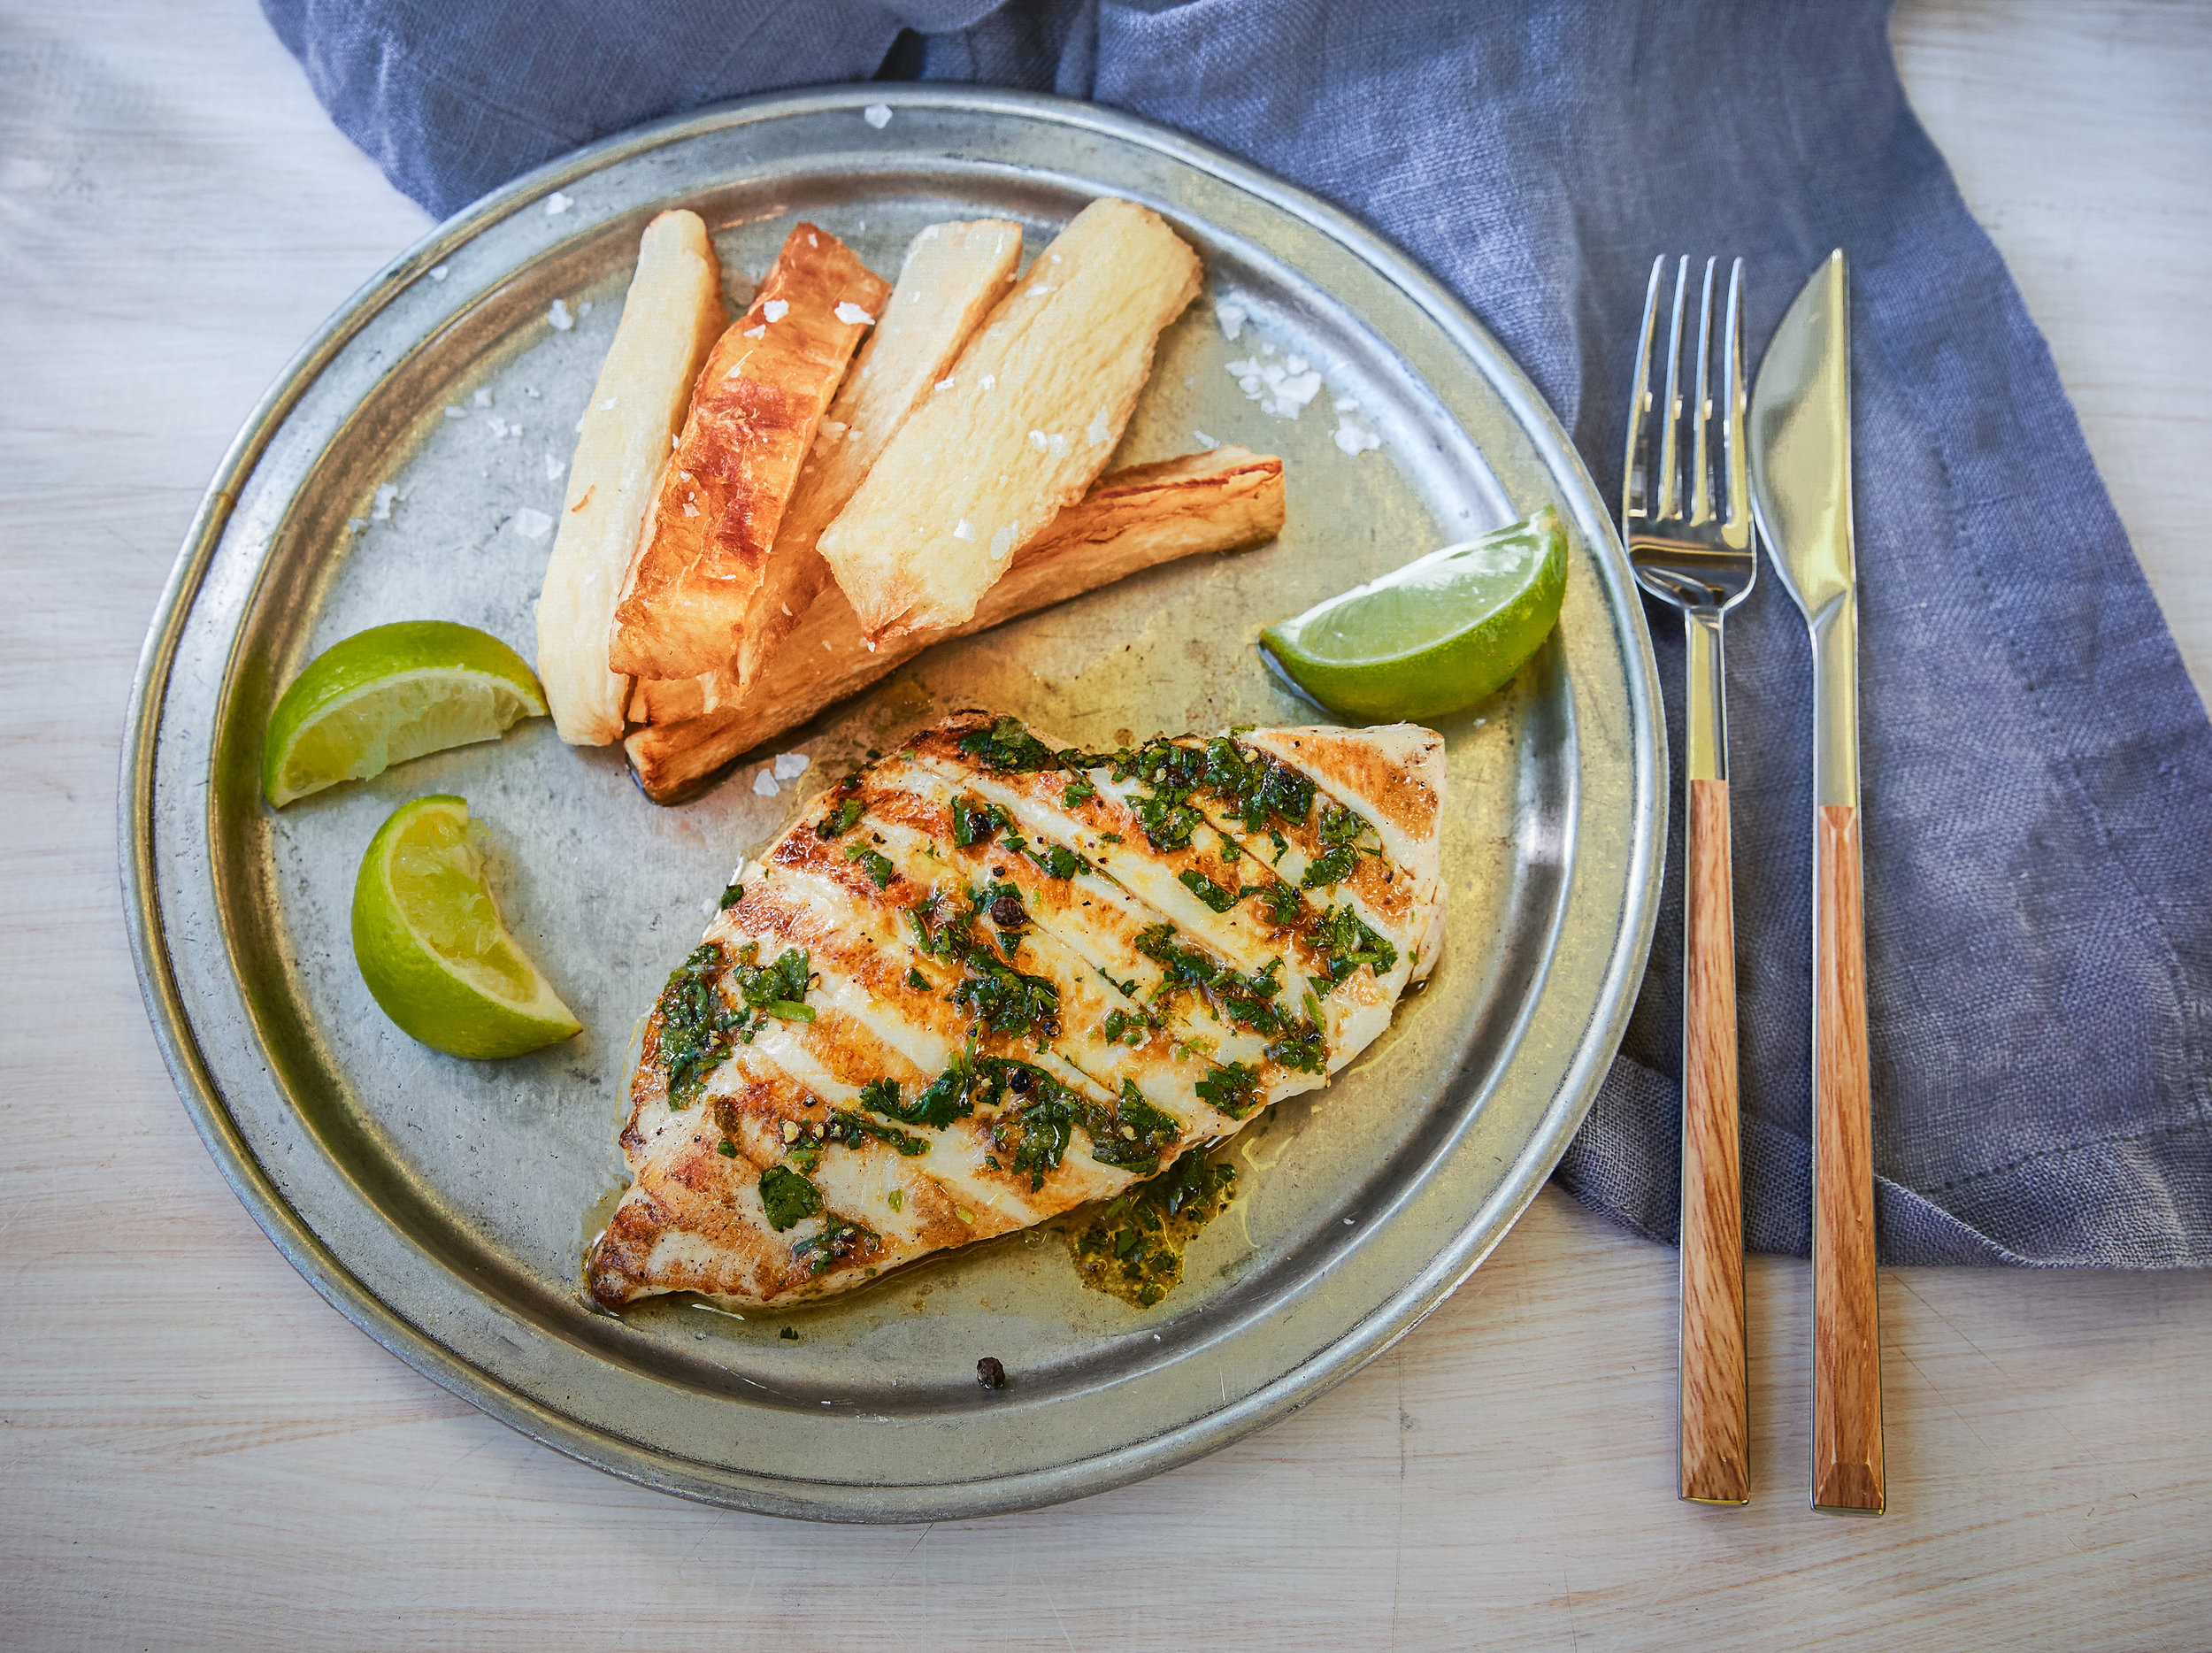 grilled chicken with yuca fries and chimichurri